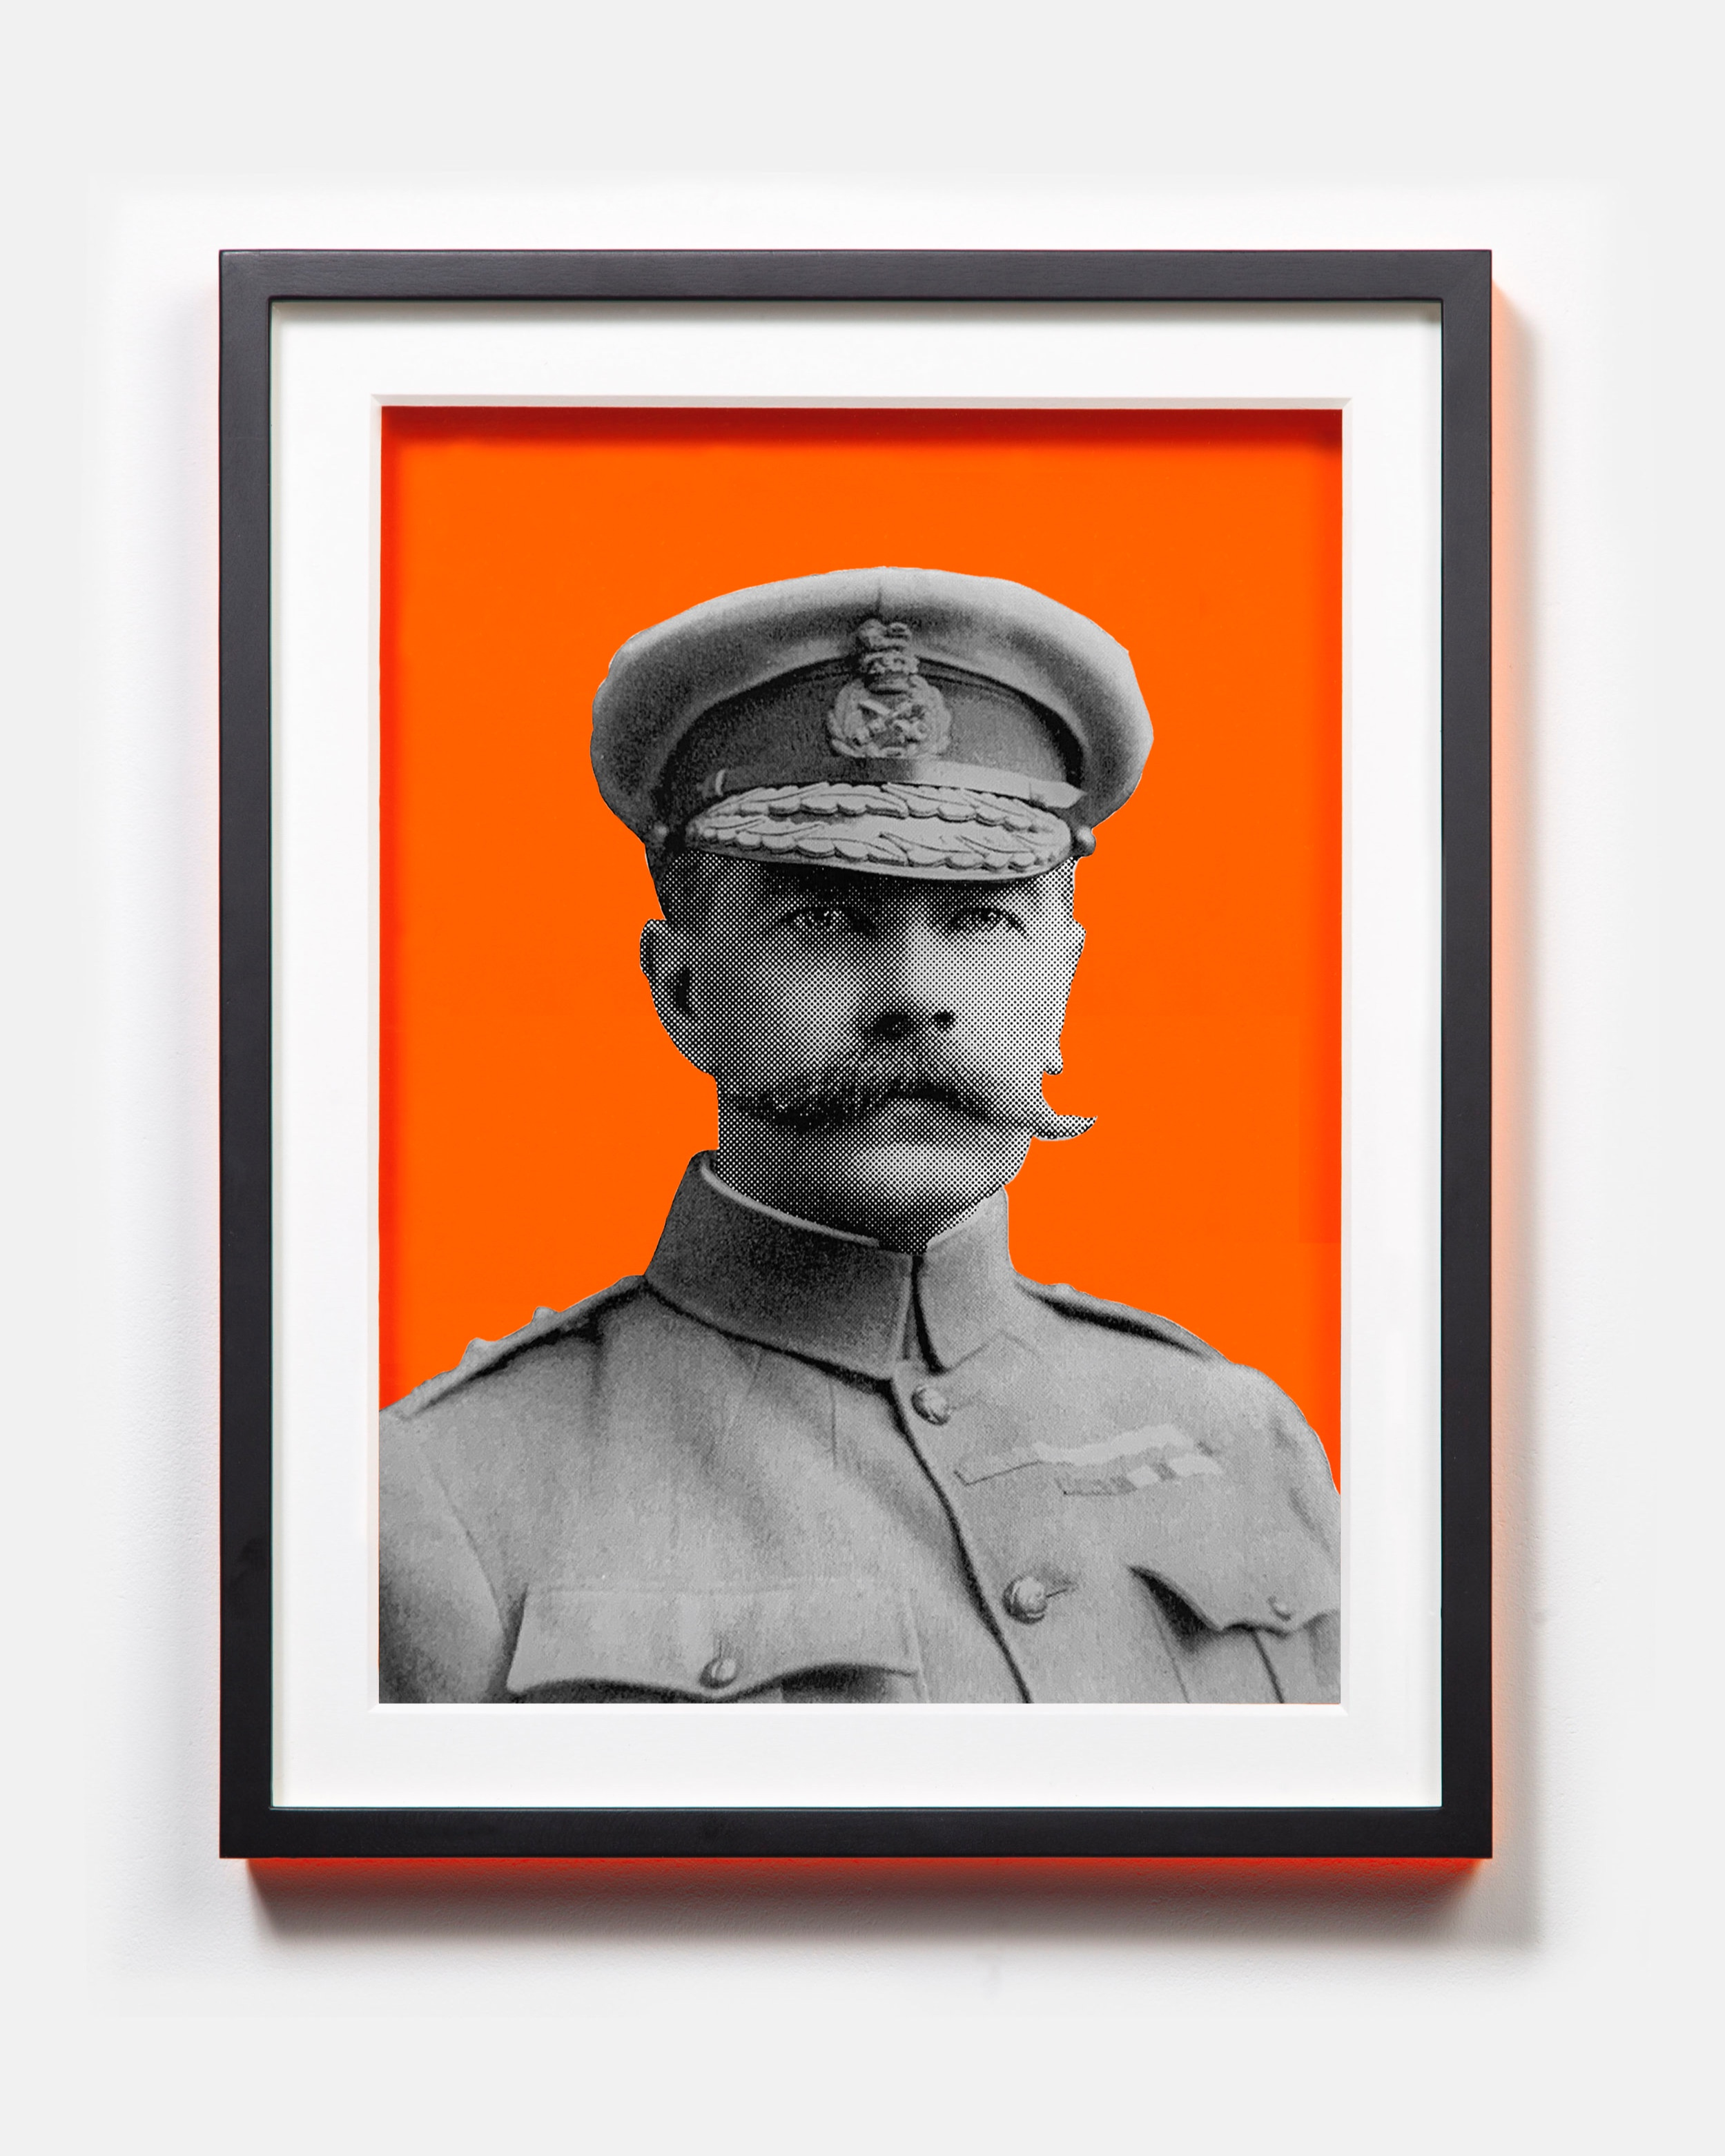 13.+Lord+Kitchener+.jpg